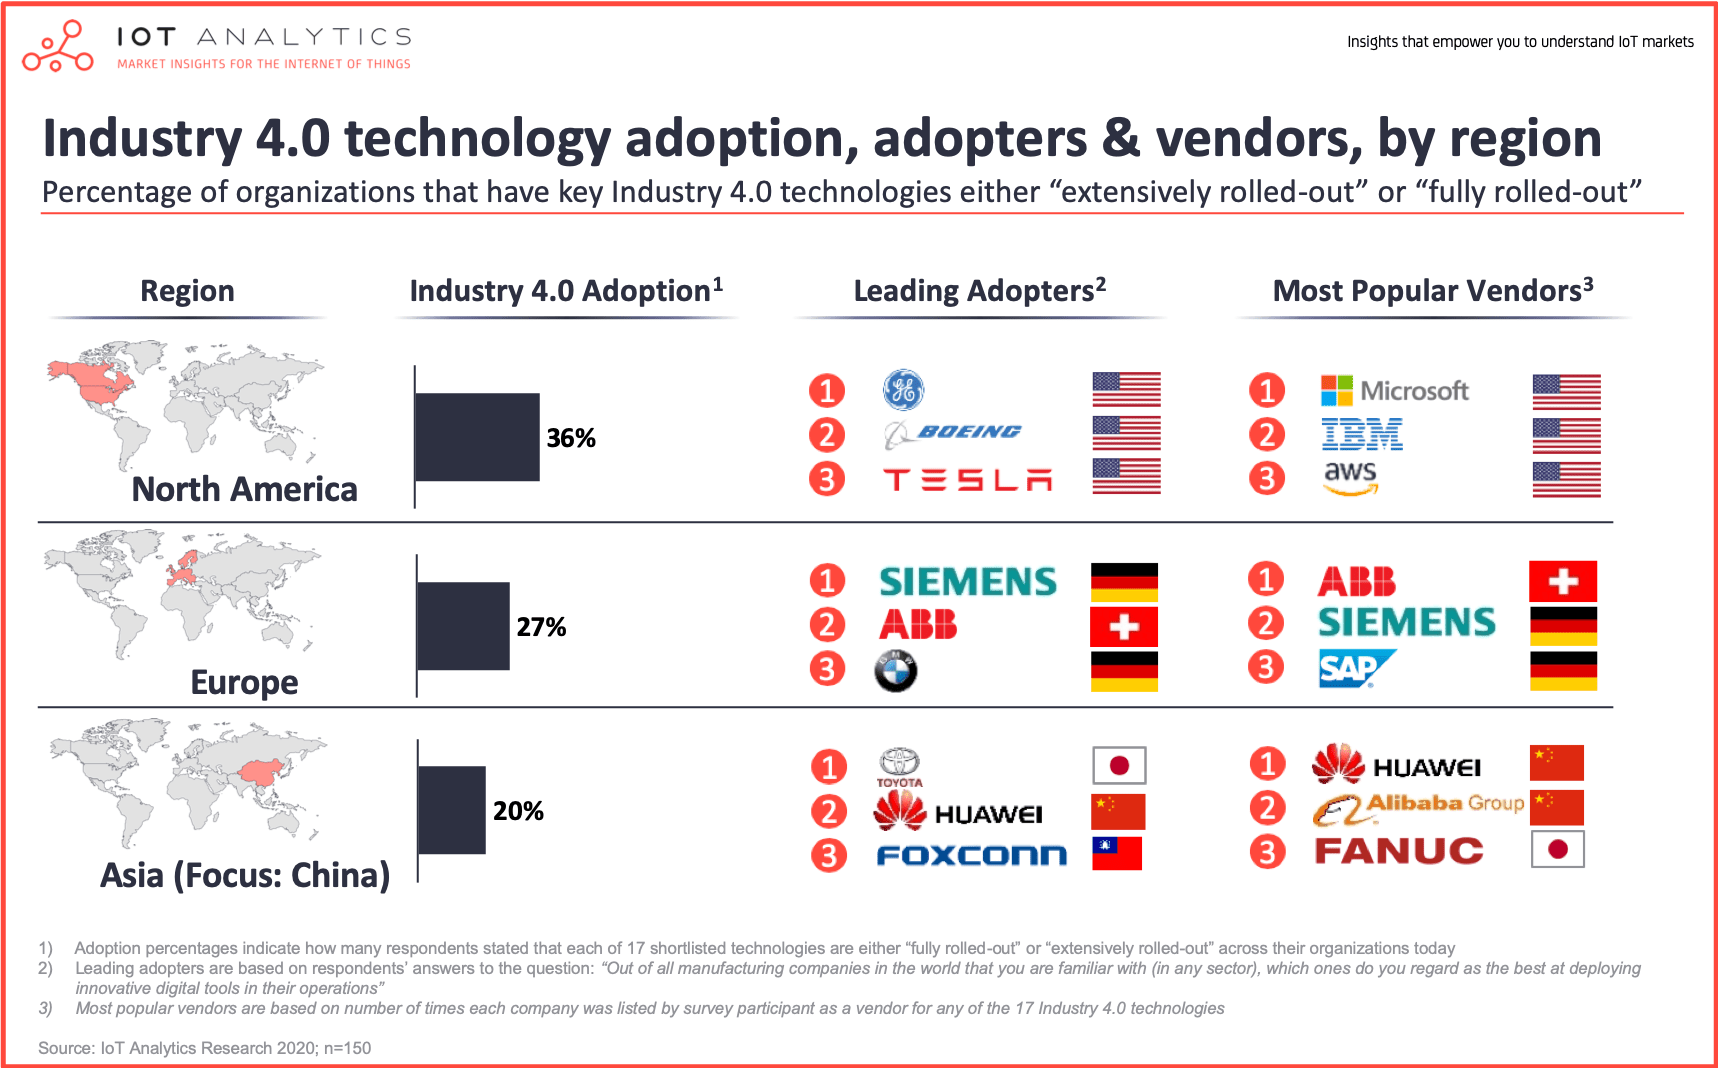 Industry 4.0 & Smart Manufacturing Adoption Report 2020 - Technology adoption vendors by region